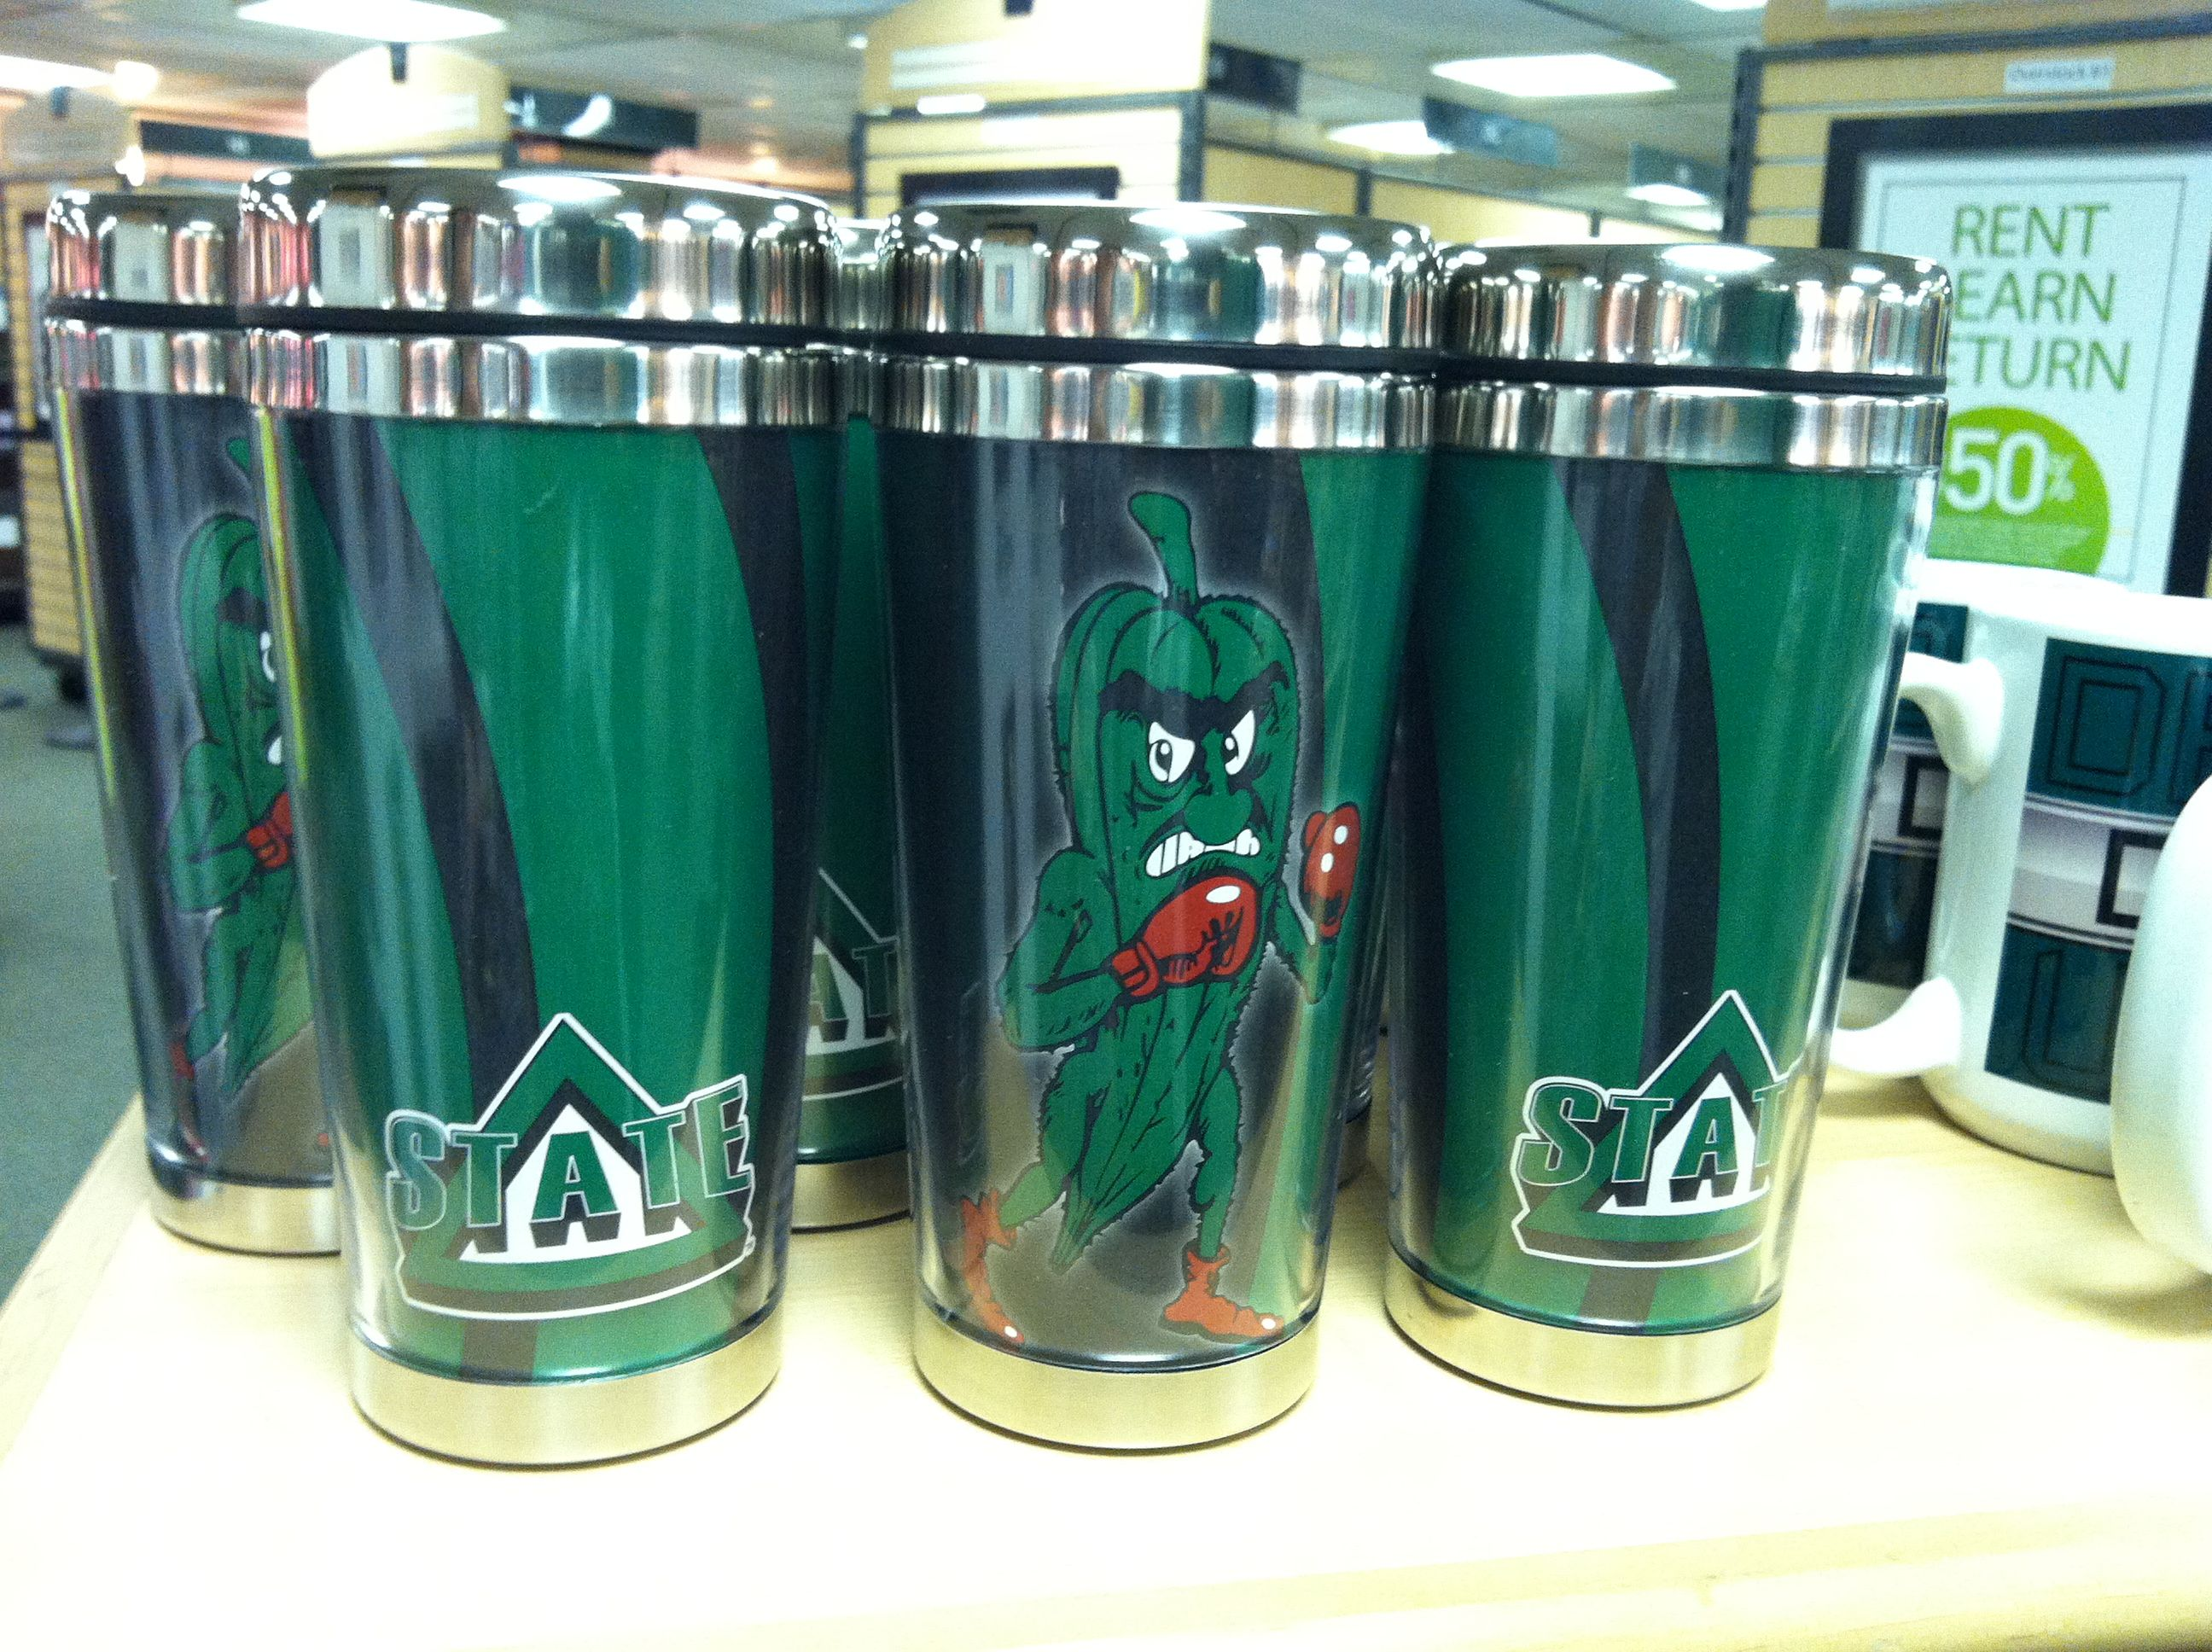 Officially Licensed Delta State drinkware available at the Barnes & Noble Bookstore on campus